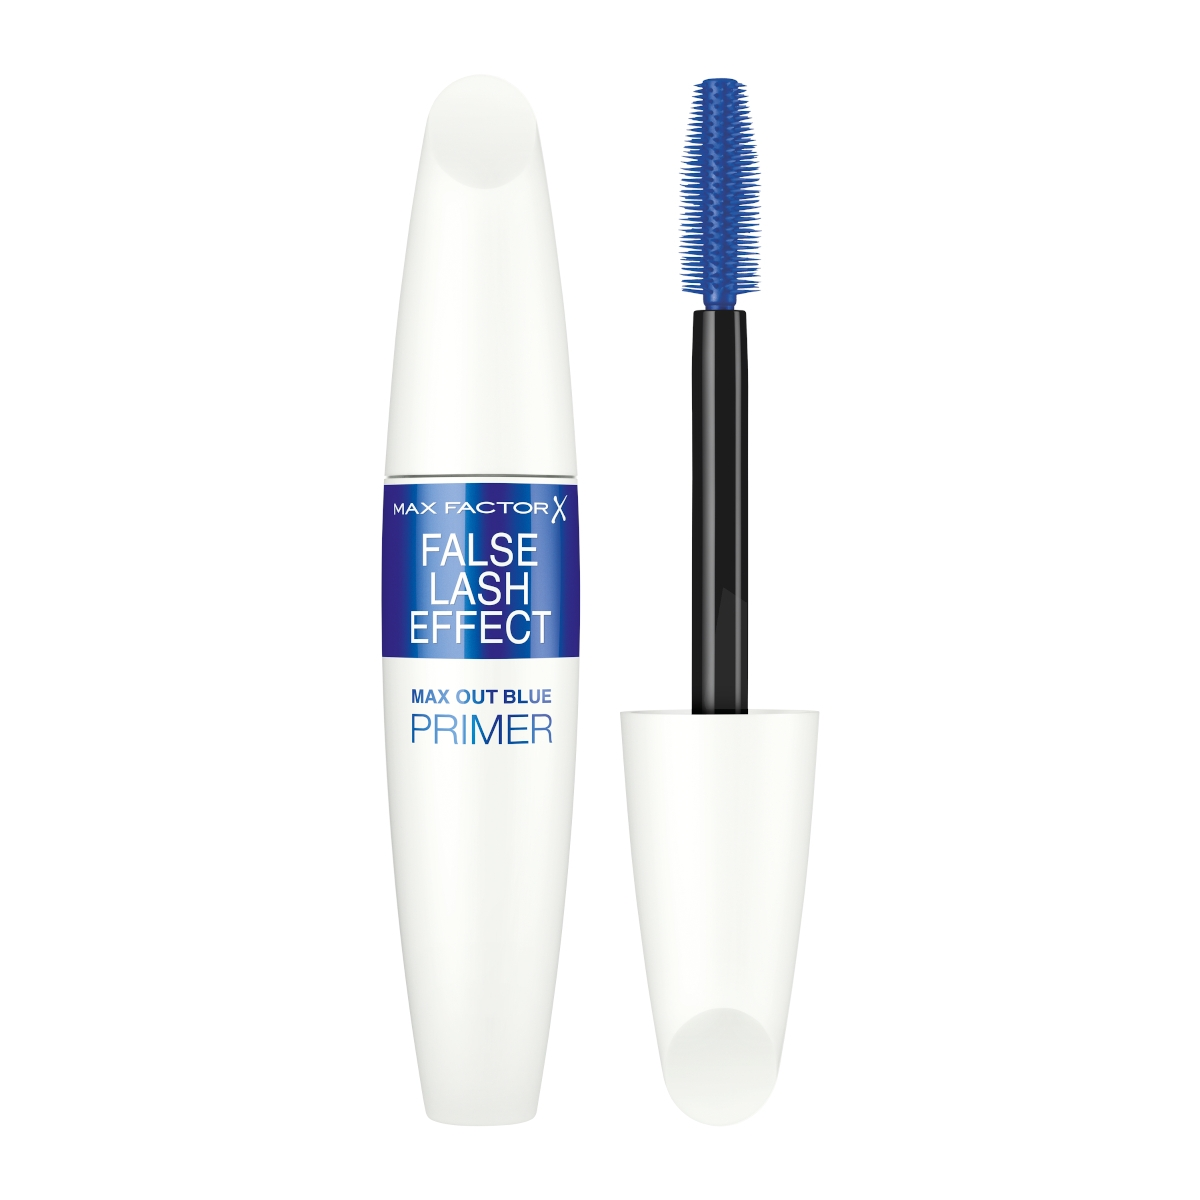 False Lash Effect Max Out Primer